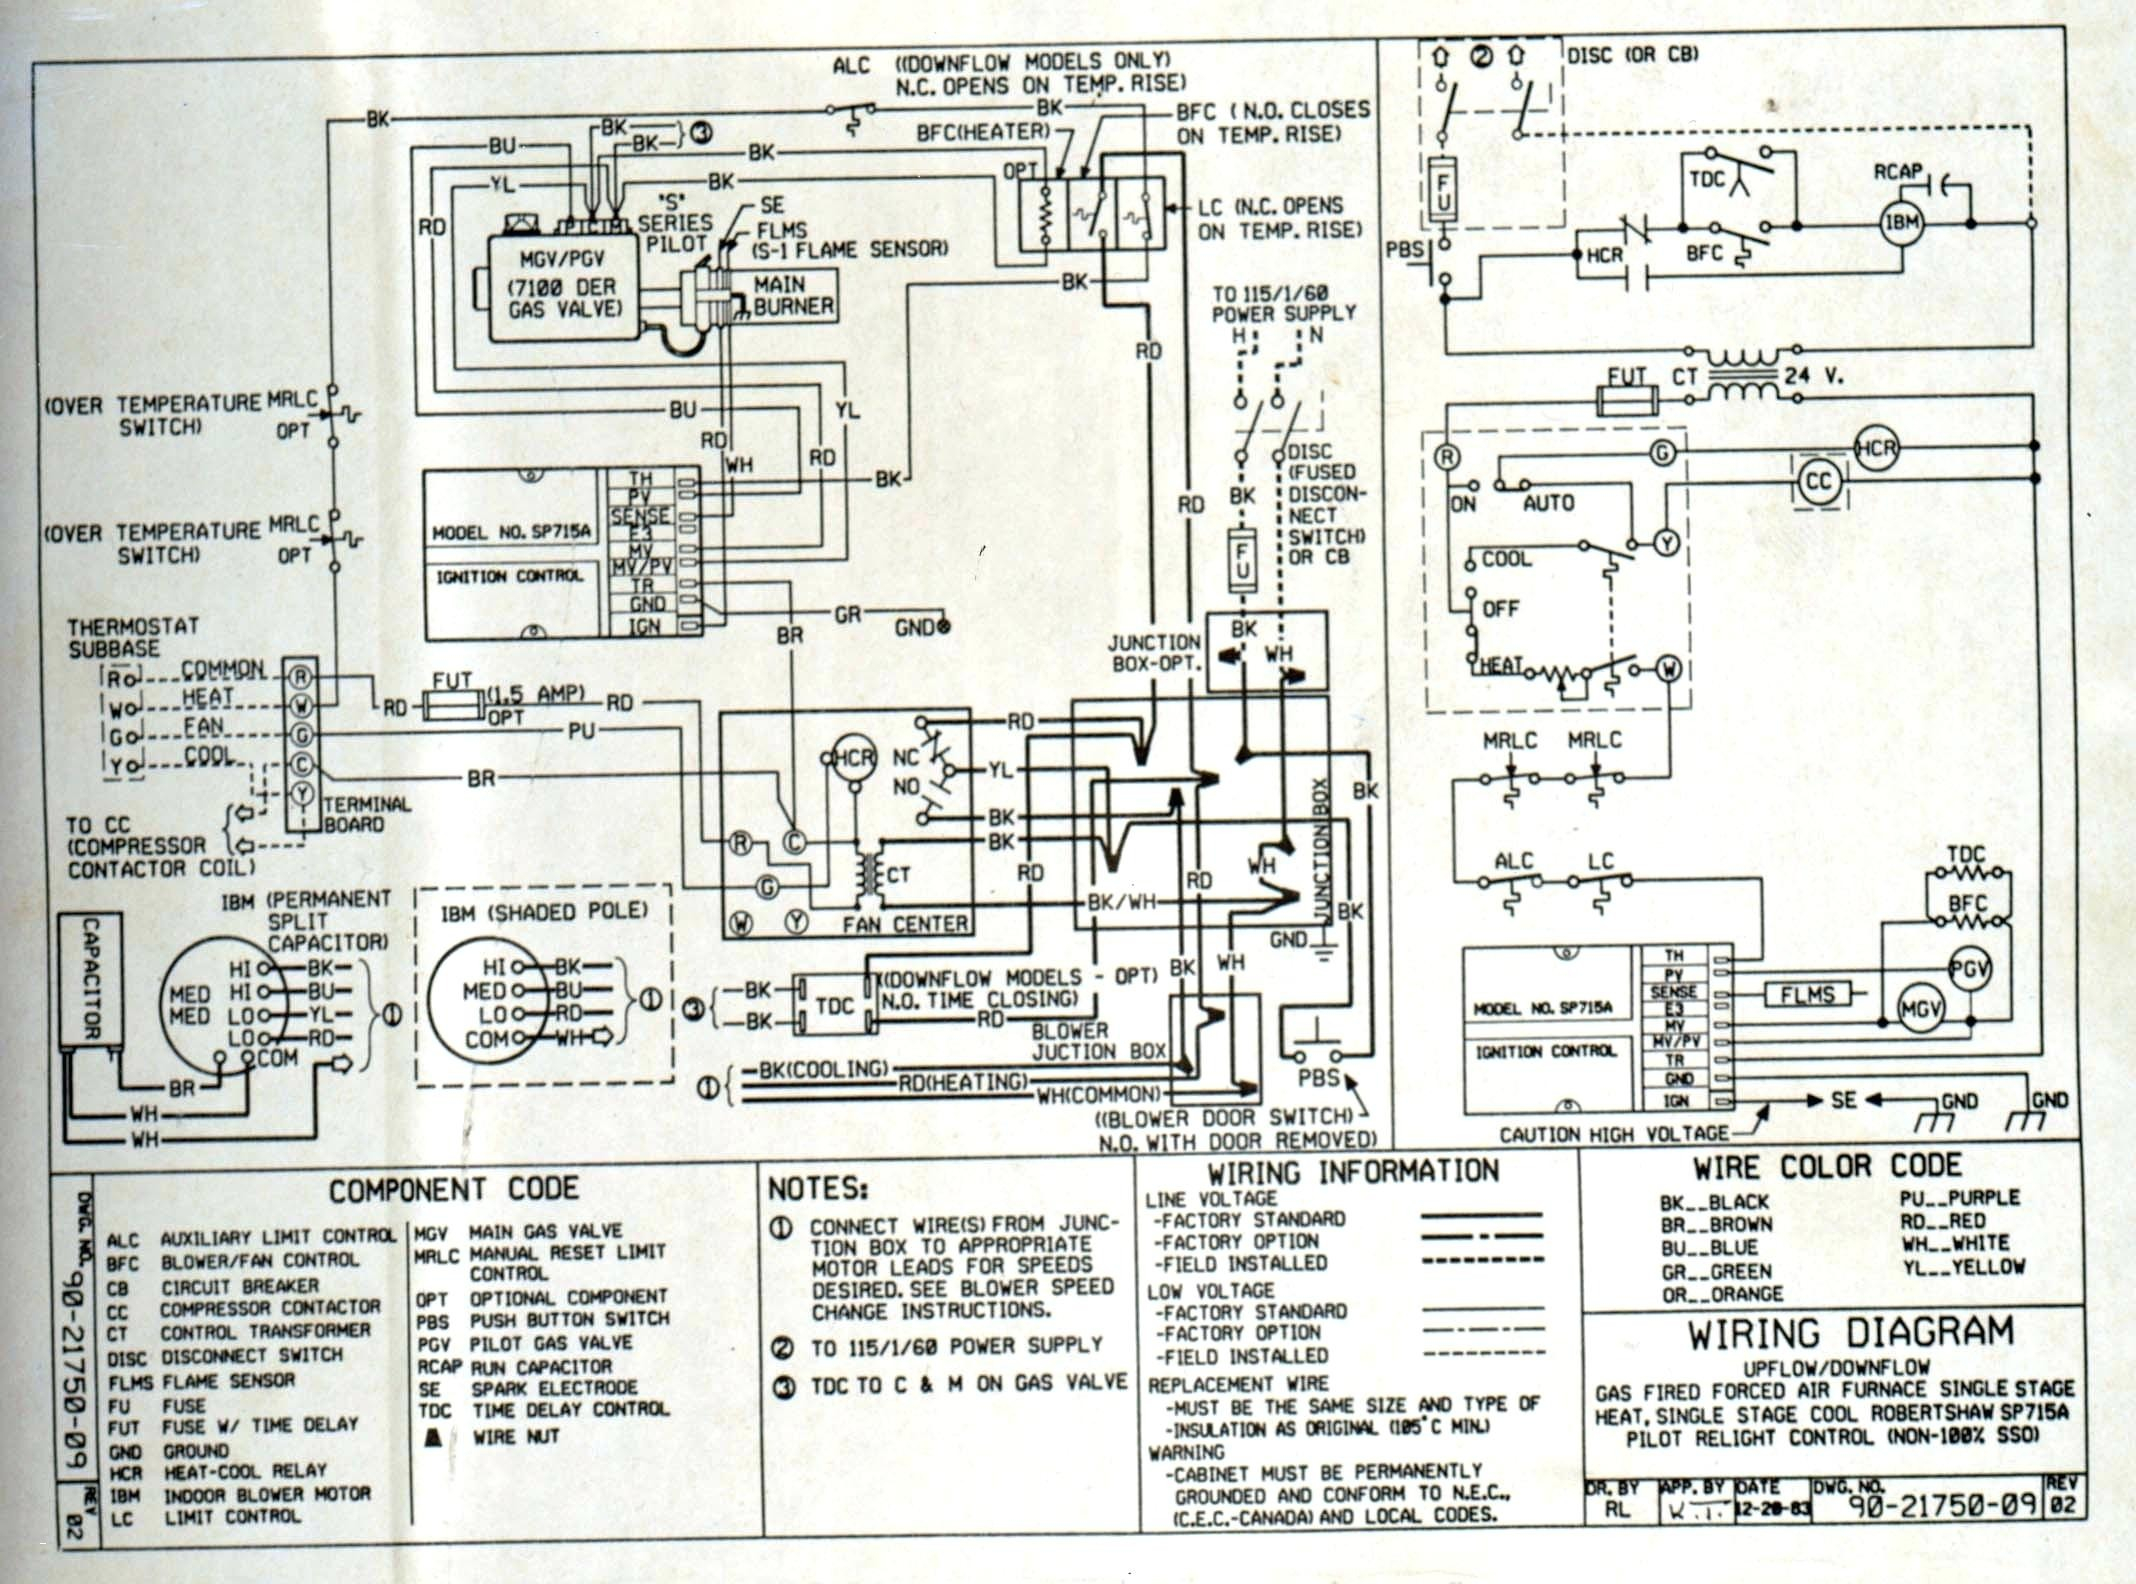 furnace blower motor wiring diagram Collection-Furnace Blower Motor Wiring Diagram Best York Electric Furnace Wiring Diagram Schematic Gallery Random 2 4-r